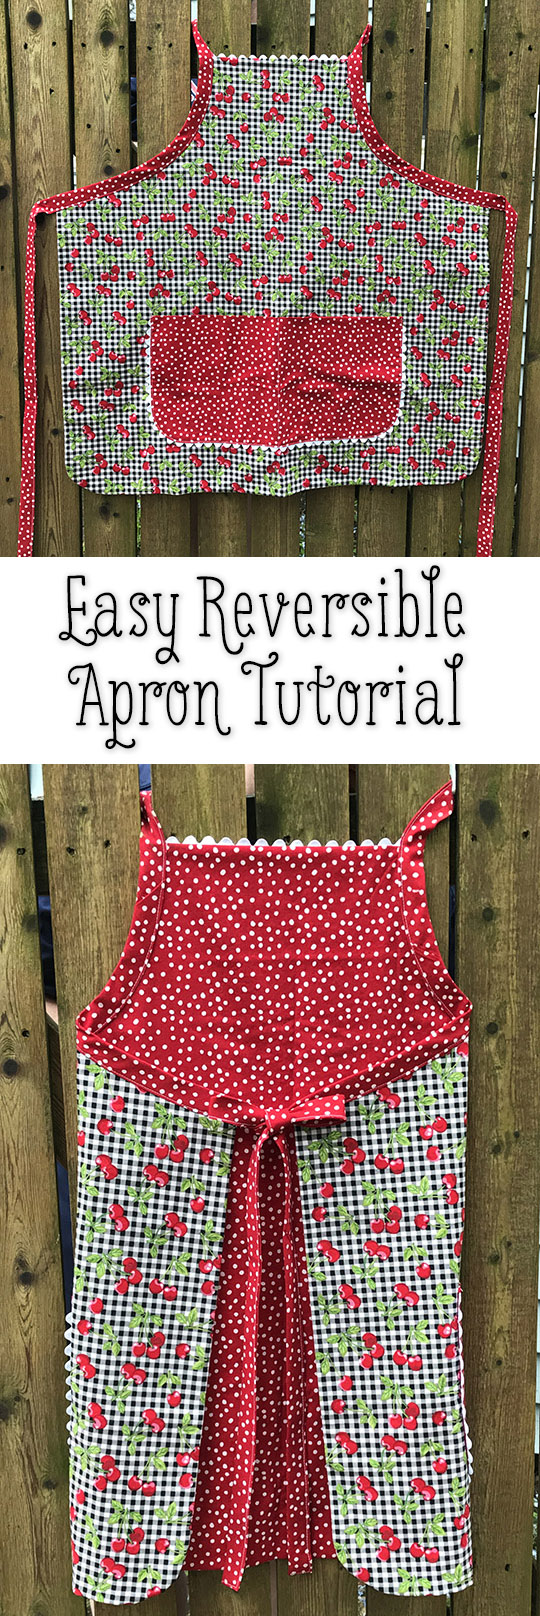 Easy Reversible Apron Tutorial